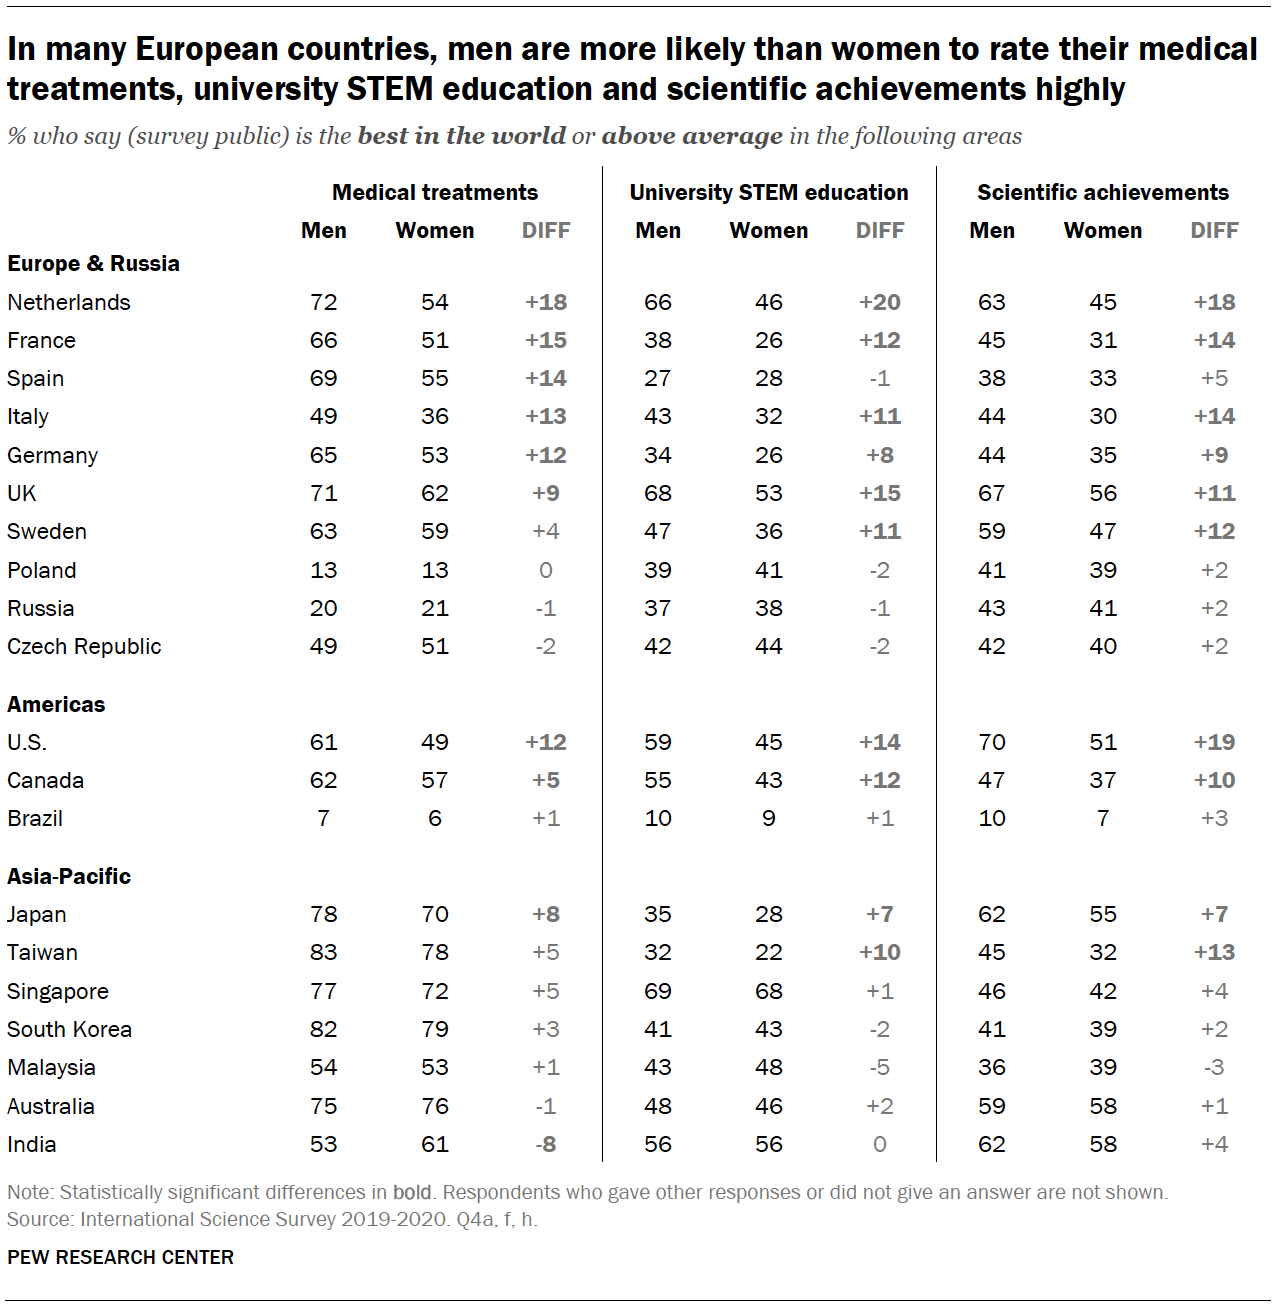 Chart shows in many European countries, men are more likely than women to rate their medical treatments, university STEM education and scientific achievements highly